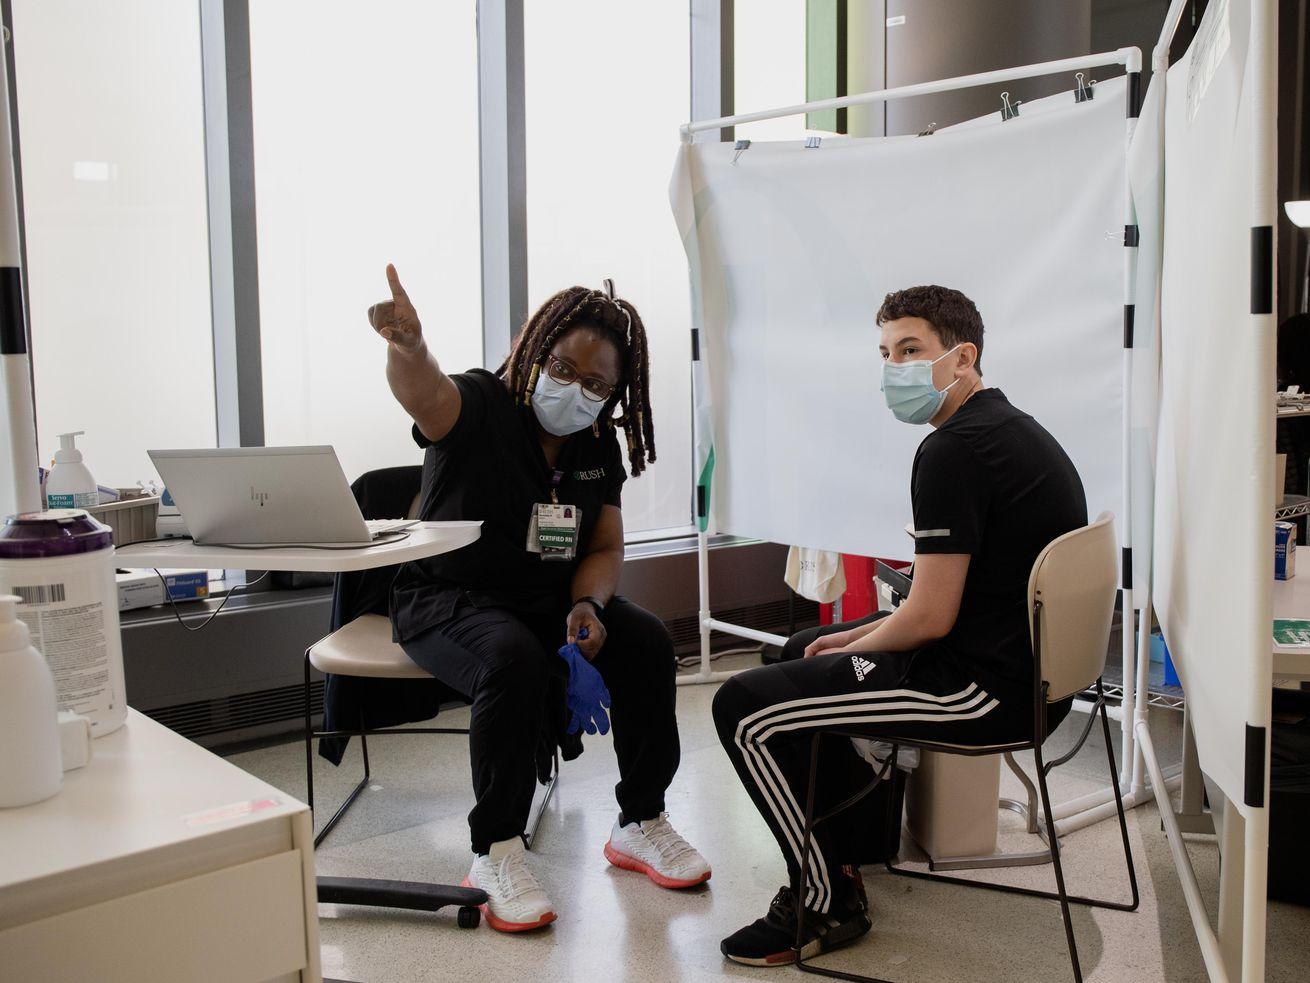 Henrietta Nkemeh talks to Christian Clettenberg, 15, before inoculating him with a COVID-19 vaccine at the Rush University Medical Center in the Illinois Medical District, Thursday morning, May 13, 2021. Kids as young as 12 became eligible for the COVID-19 vaccine Thursday.   Pat Nabong/Sun-Times